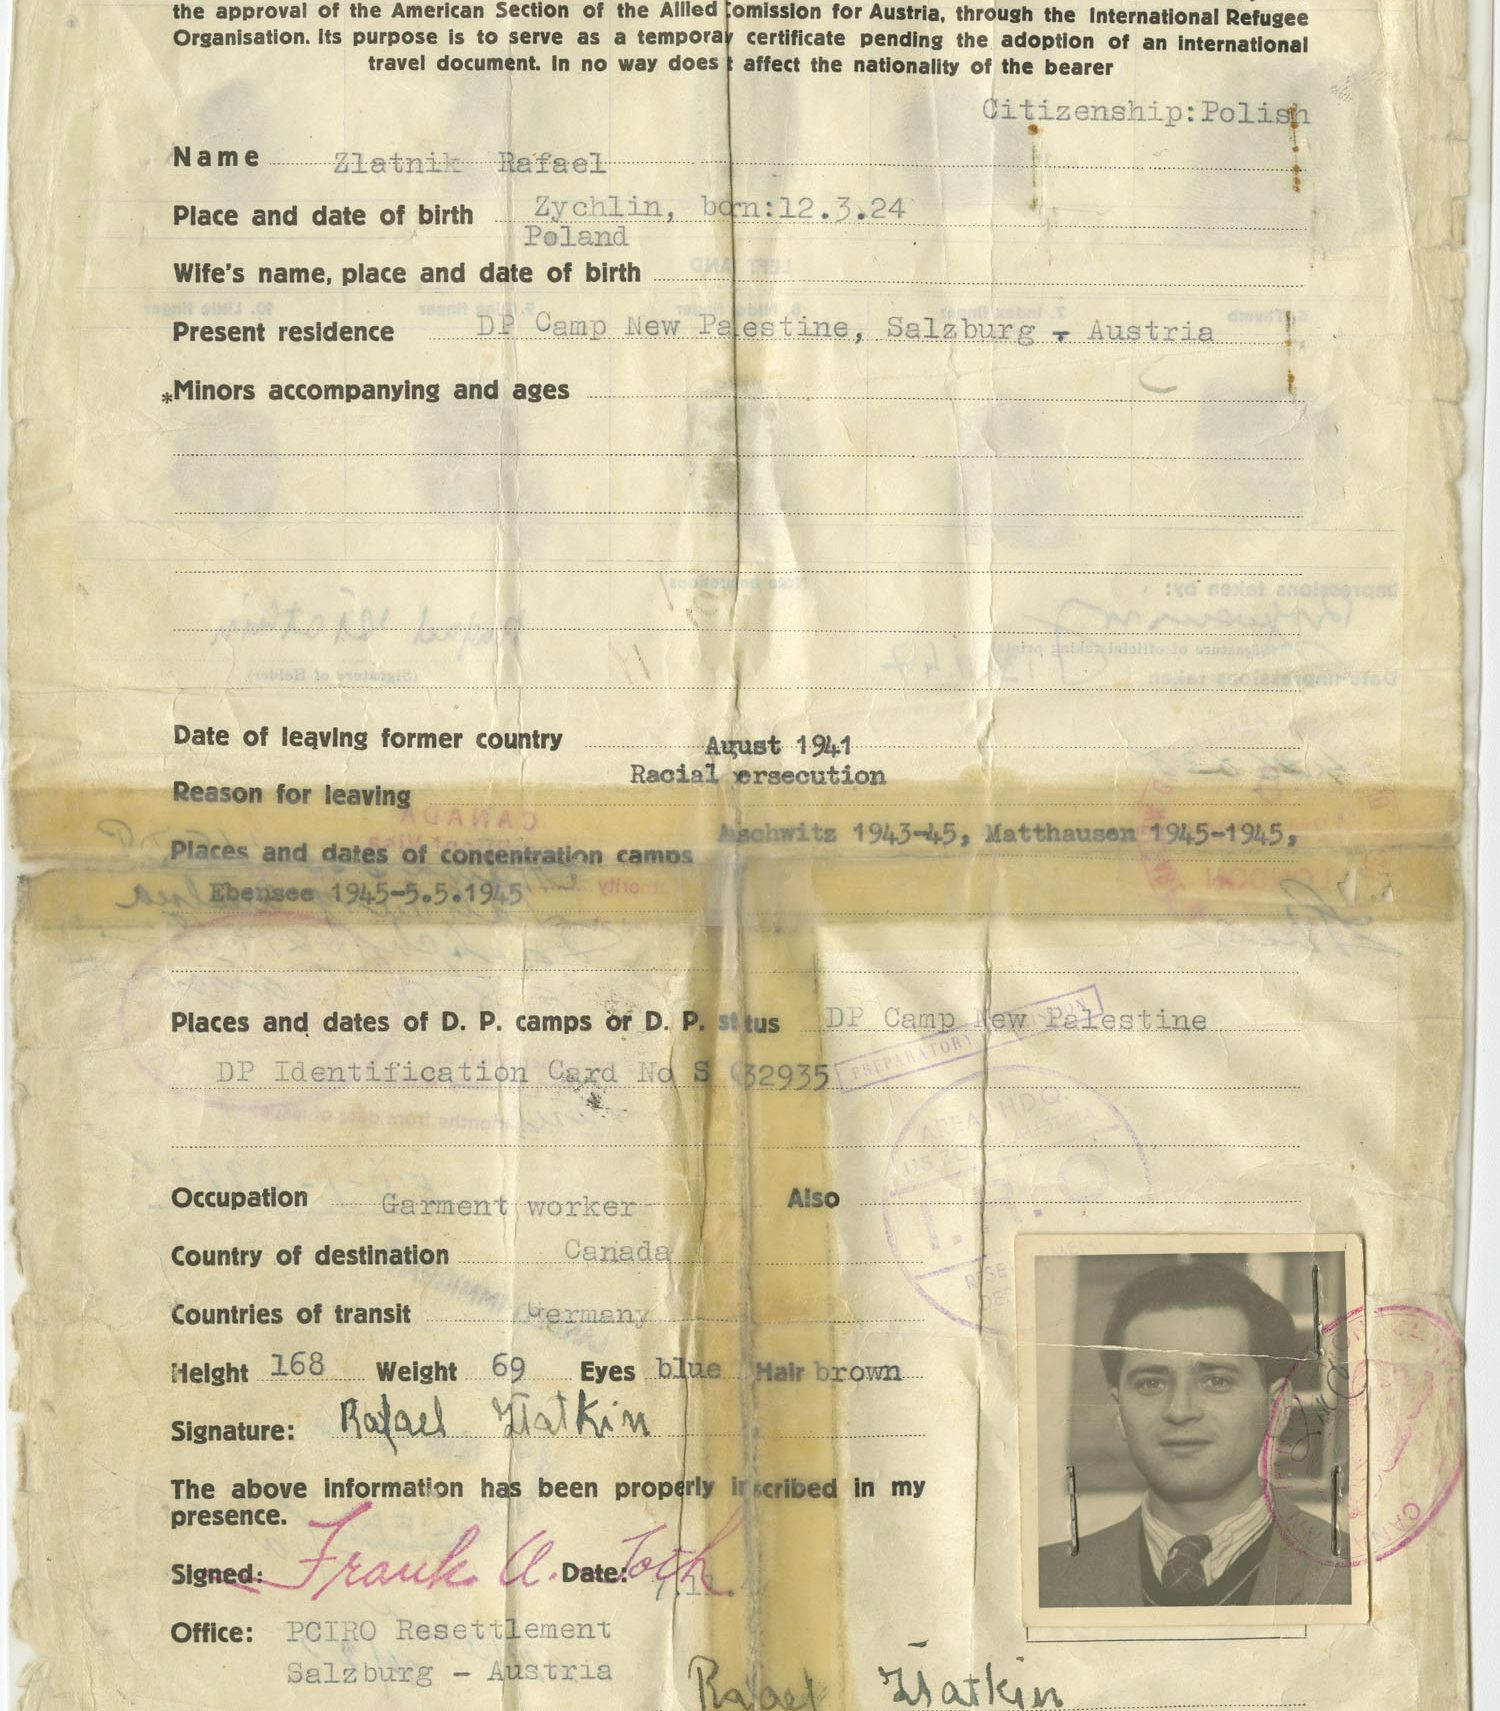 identity certificate given to refugees who were not under the protection of any government after World War II. This document belonged to Rafael Zlatkin, a survivor of the Auschwitz, Mauthausen and Ebensee camps where he was incarcerated between 1943 and 1945.